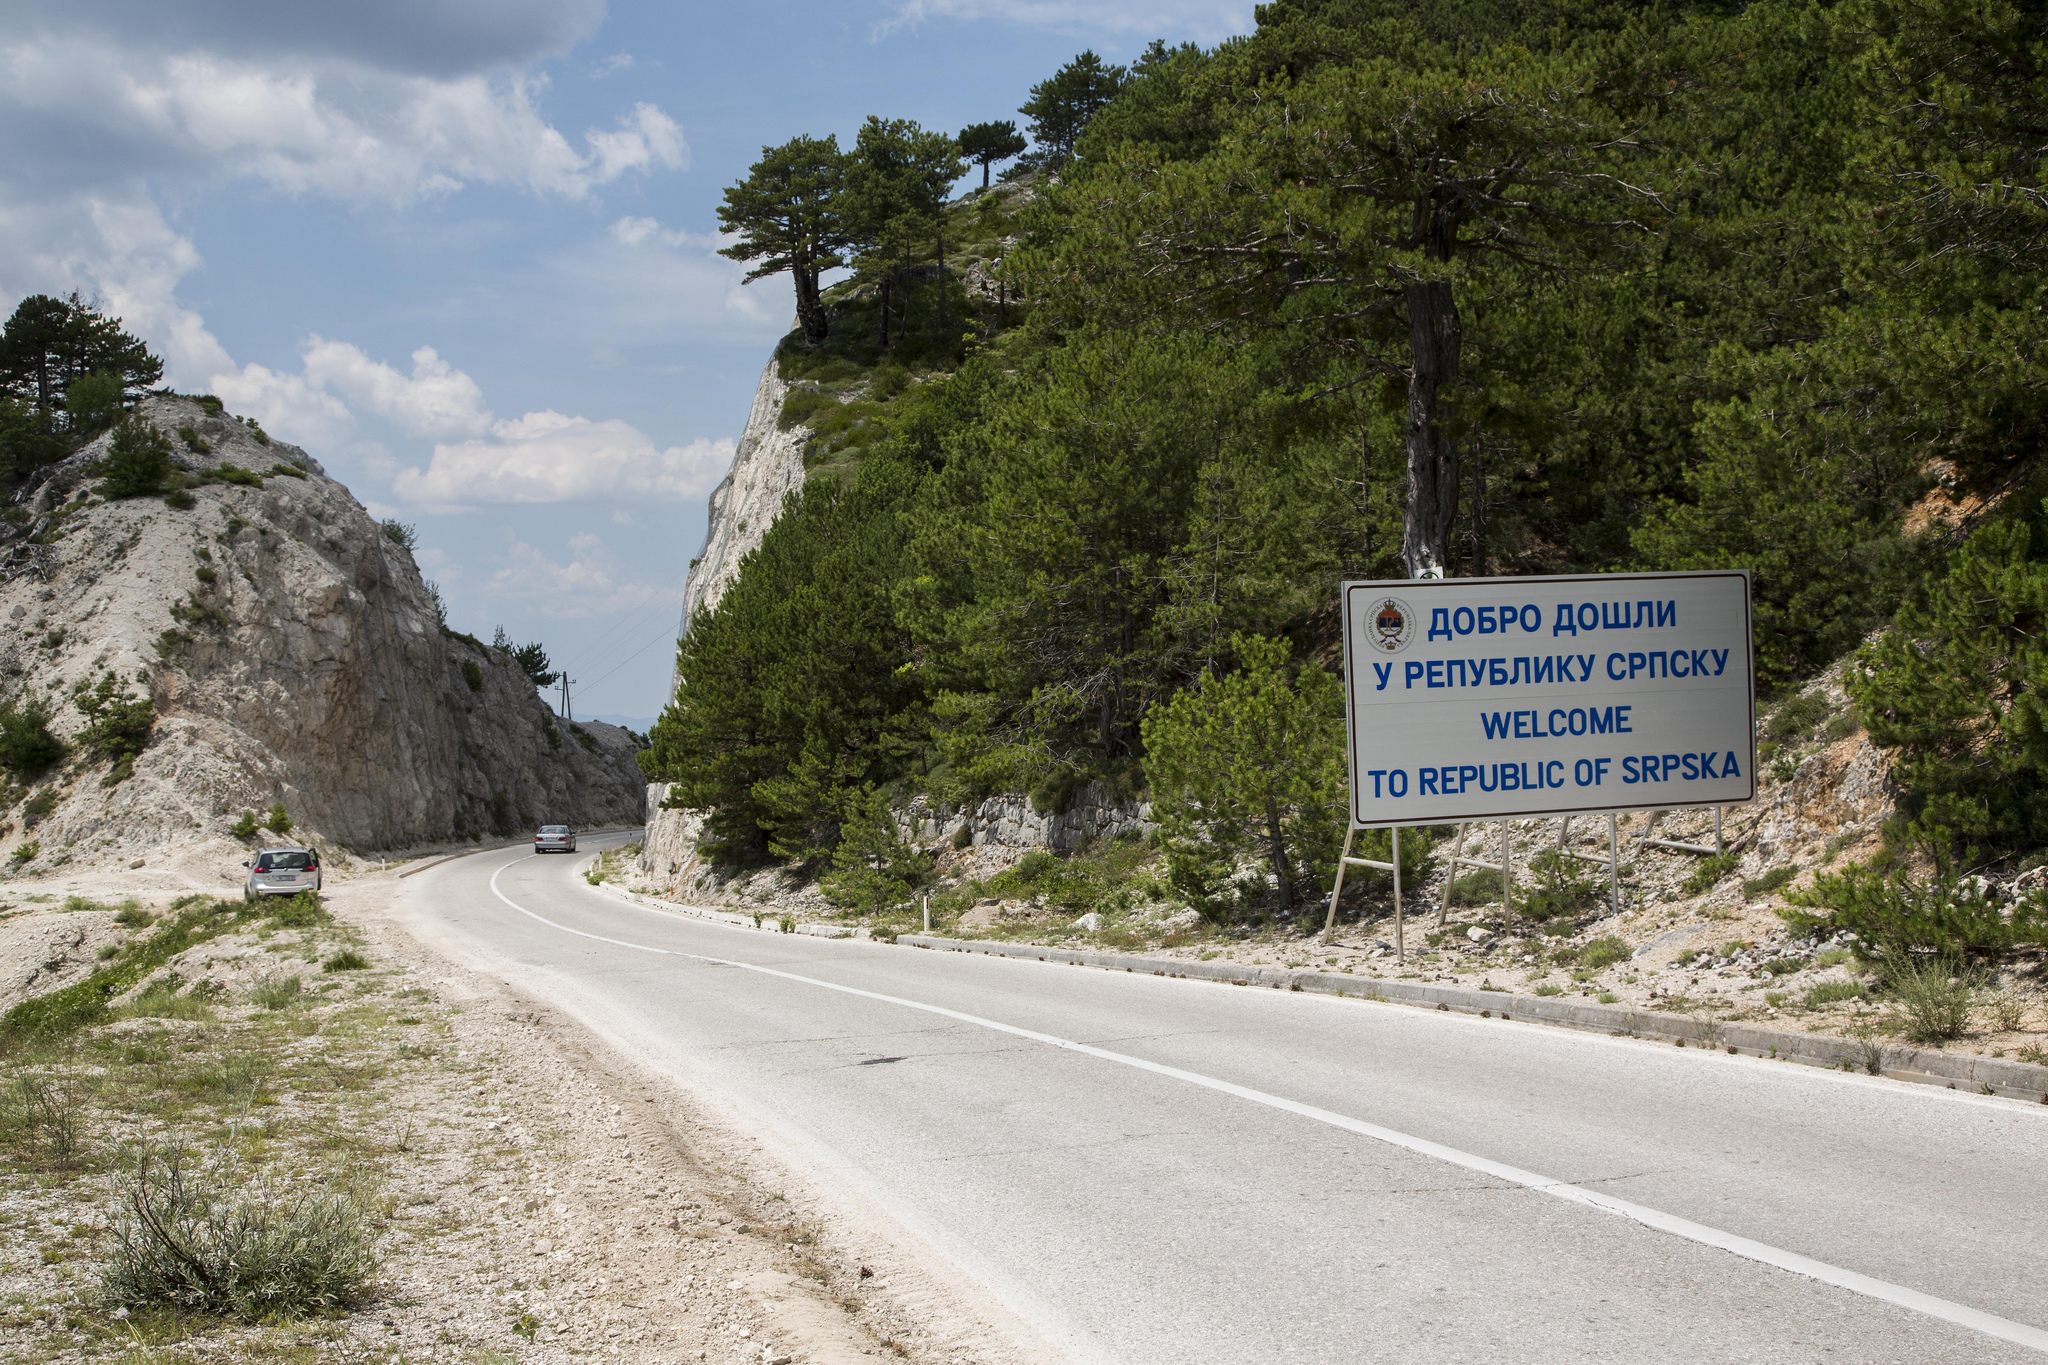 Welcome to Bosnia - An Example of the roads and driving conditions in Bosnia